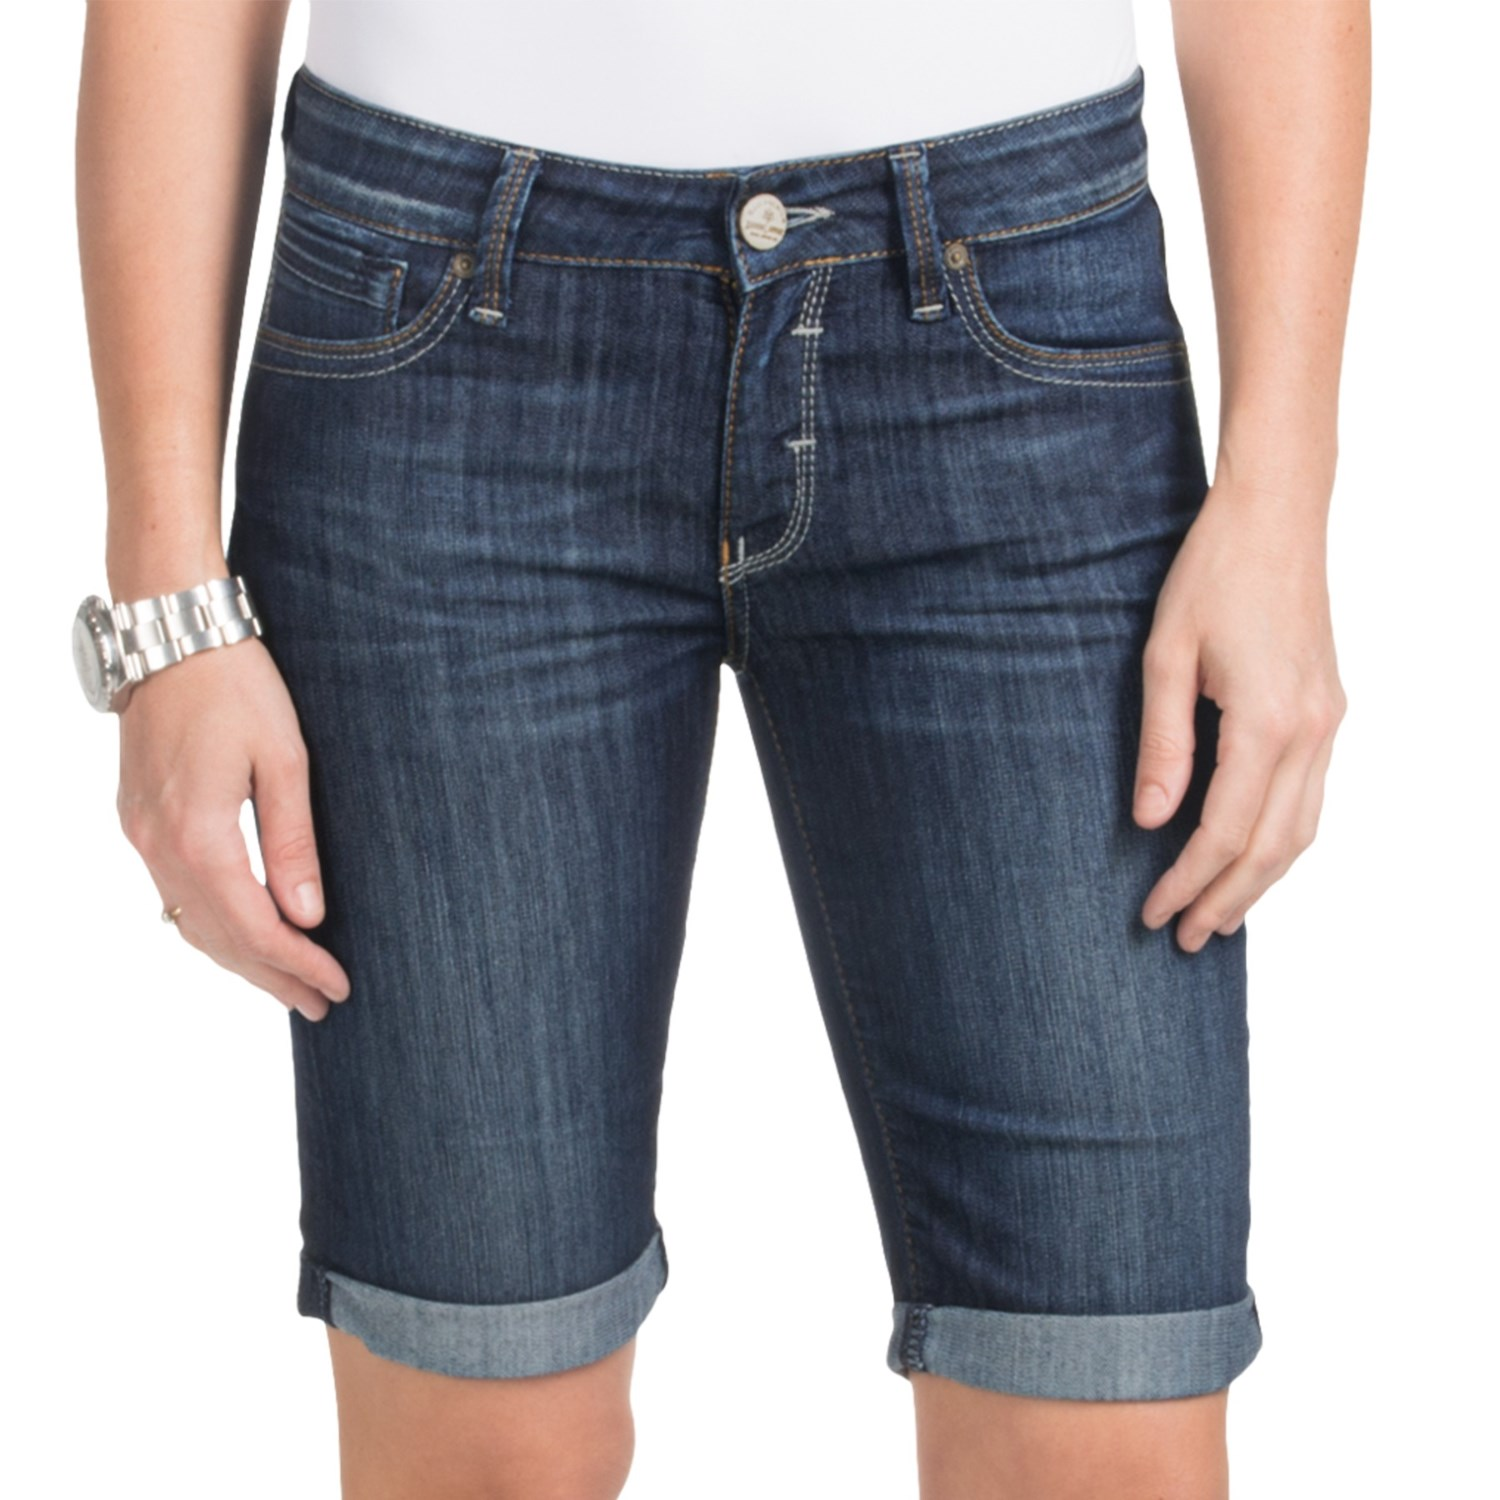 Buy New Denim Bermuda Shorts for Women at Macy's. Shop for Womens Shorts Online at cpdlp9wivh506.ga Free Shipping Available!